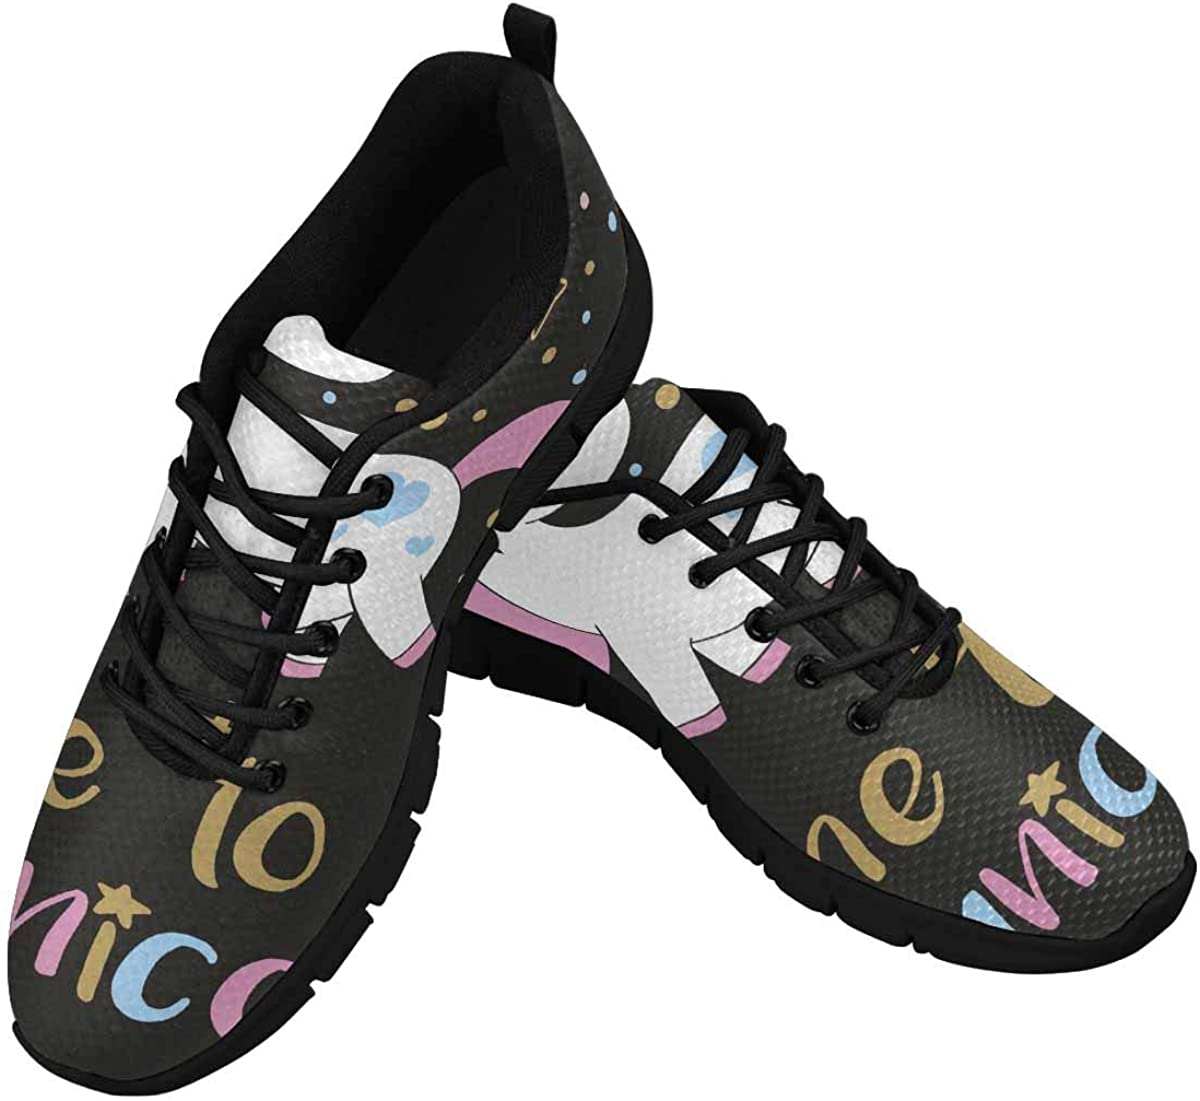 INTERESTPRINT Hand Lettering Time to Be a Unicorn Women's Walking Shoes Lightweight Casual Running Sneakers